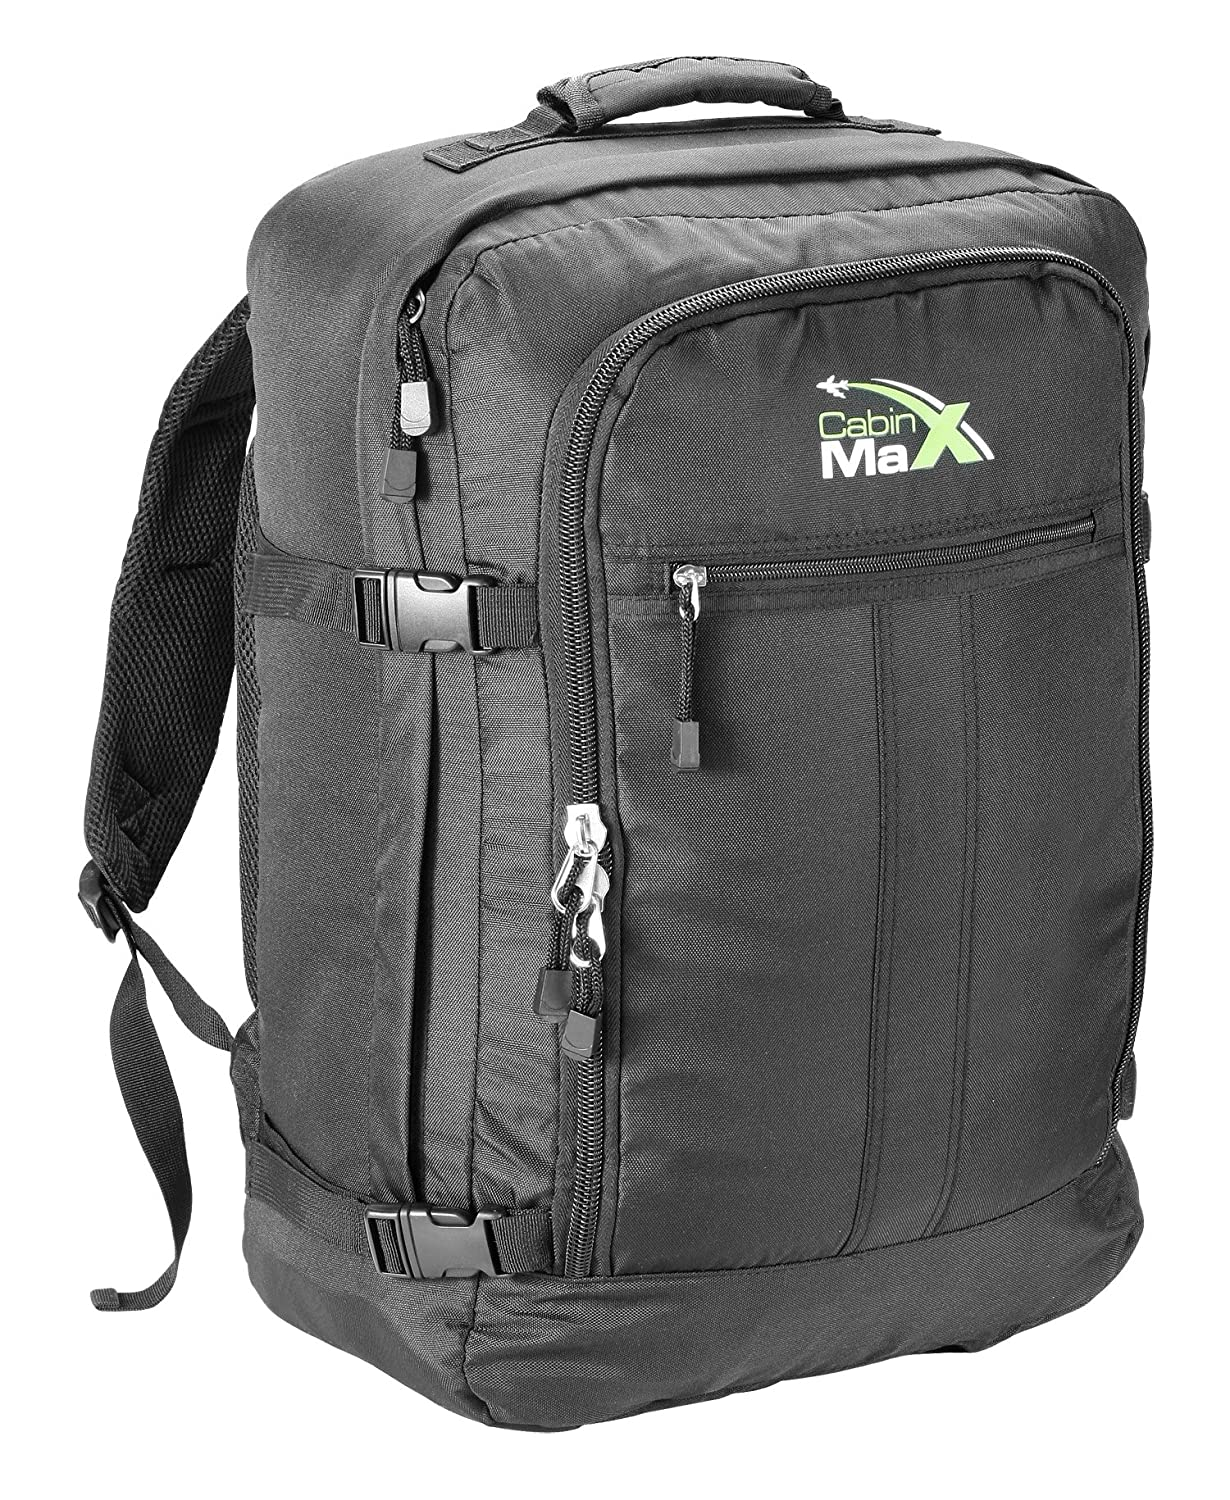 Cabin max backpack flight approved carry on bag travel for Laptop cabin bag